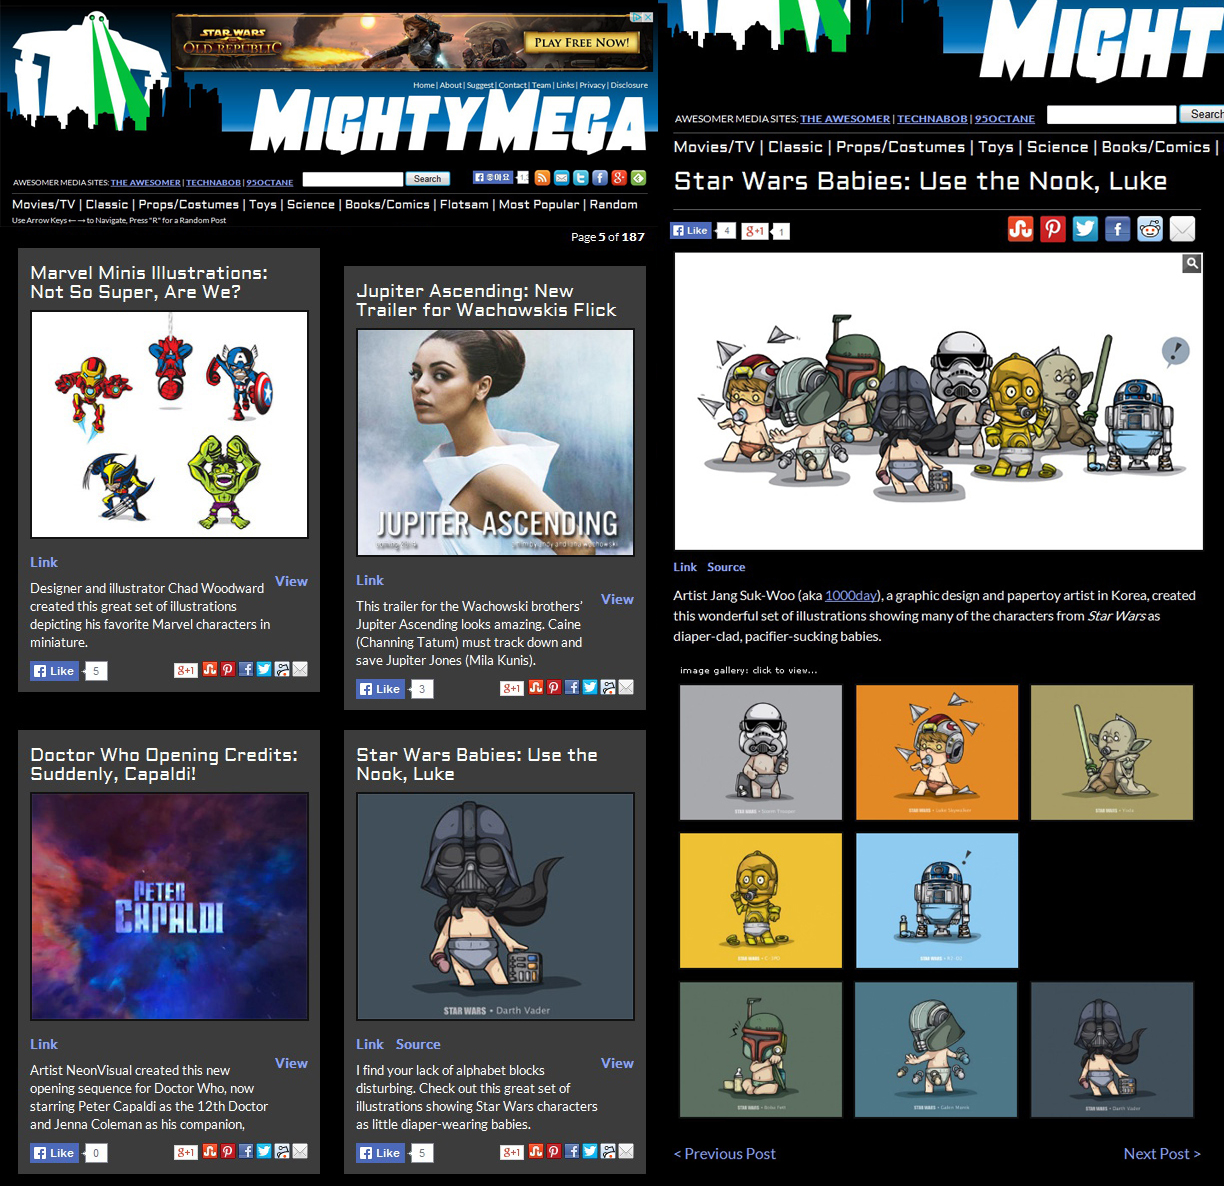 MIGHTY MEGA interview